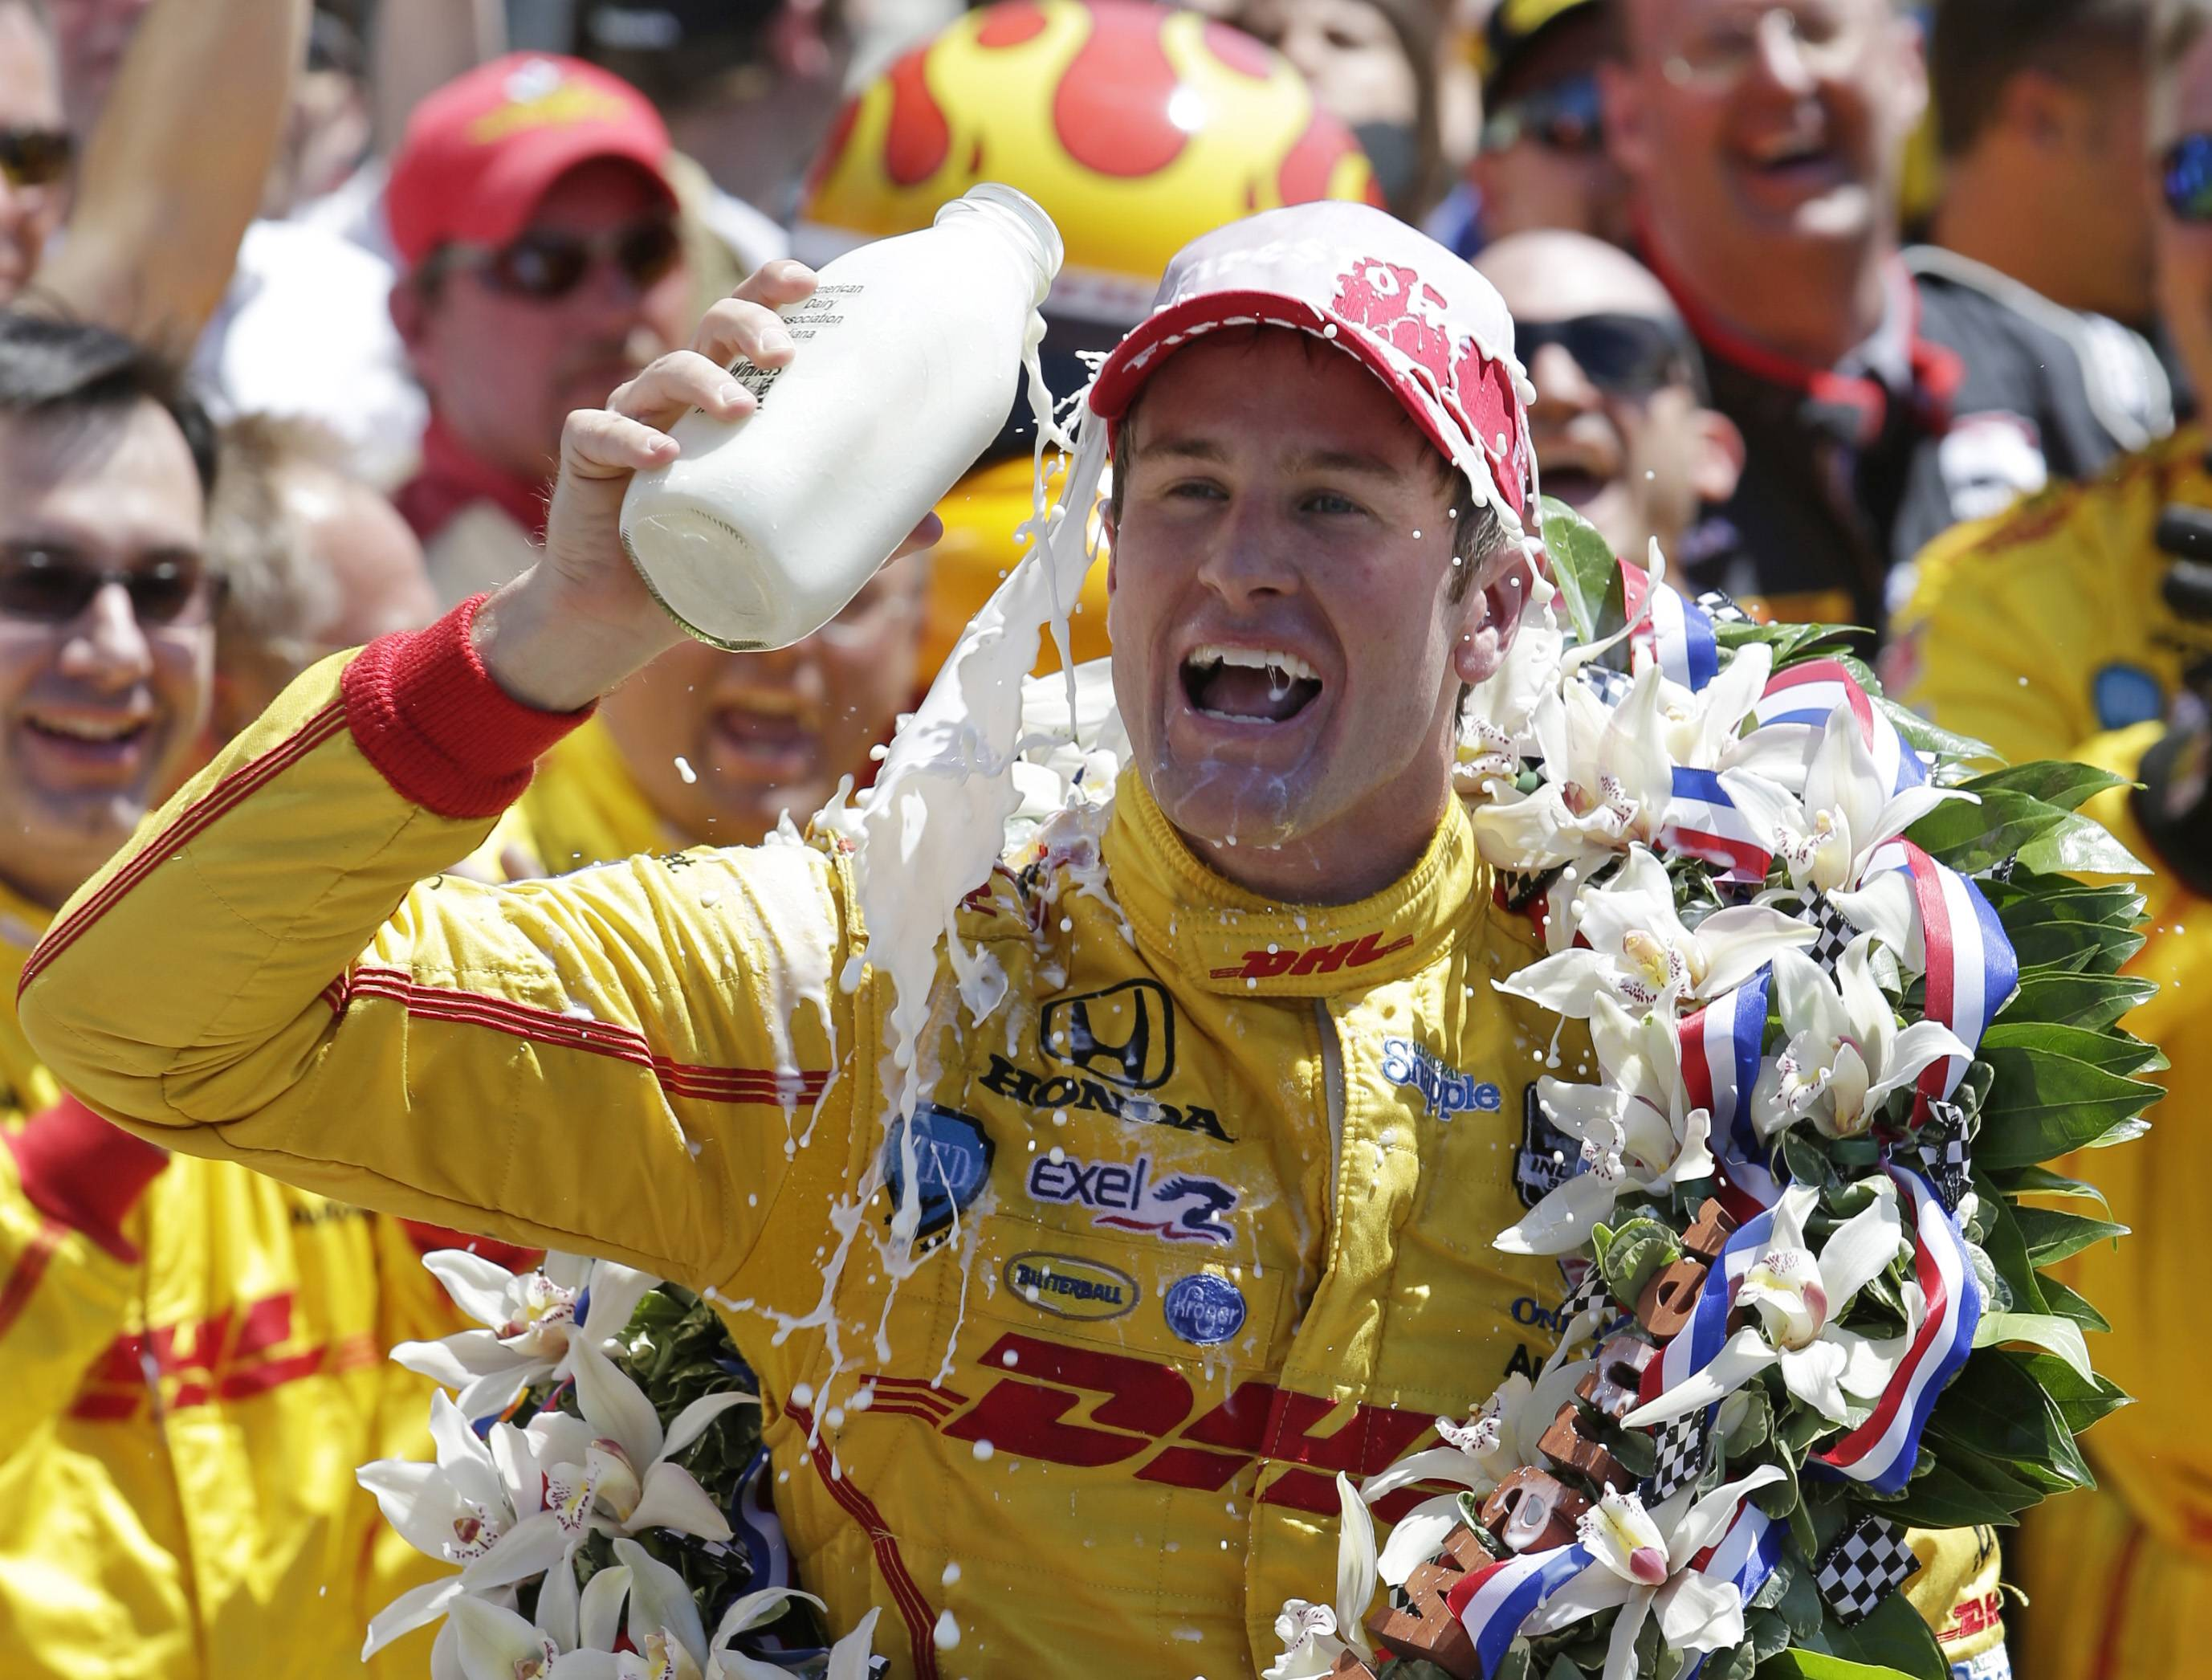 Ryan Hunter-Reay celebrates winning the Indianapolis 500 IndyCar auto race at the Indianapolis Motor Speedway in Indianapolis, Sunday.